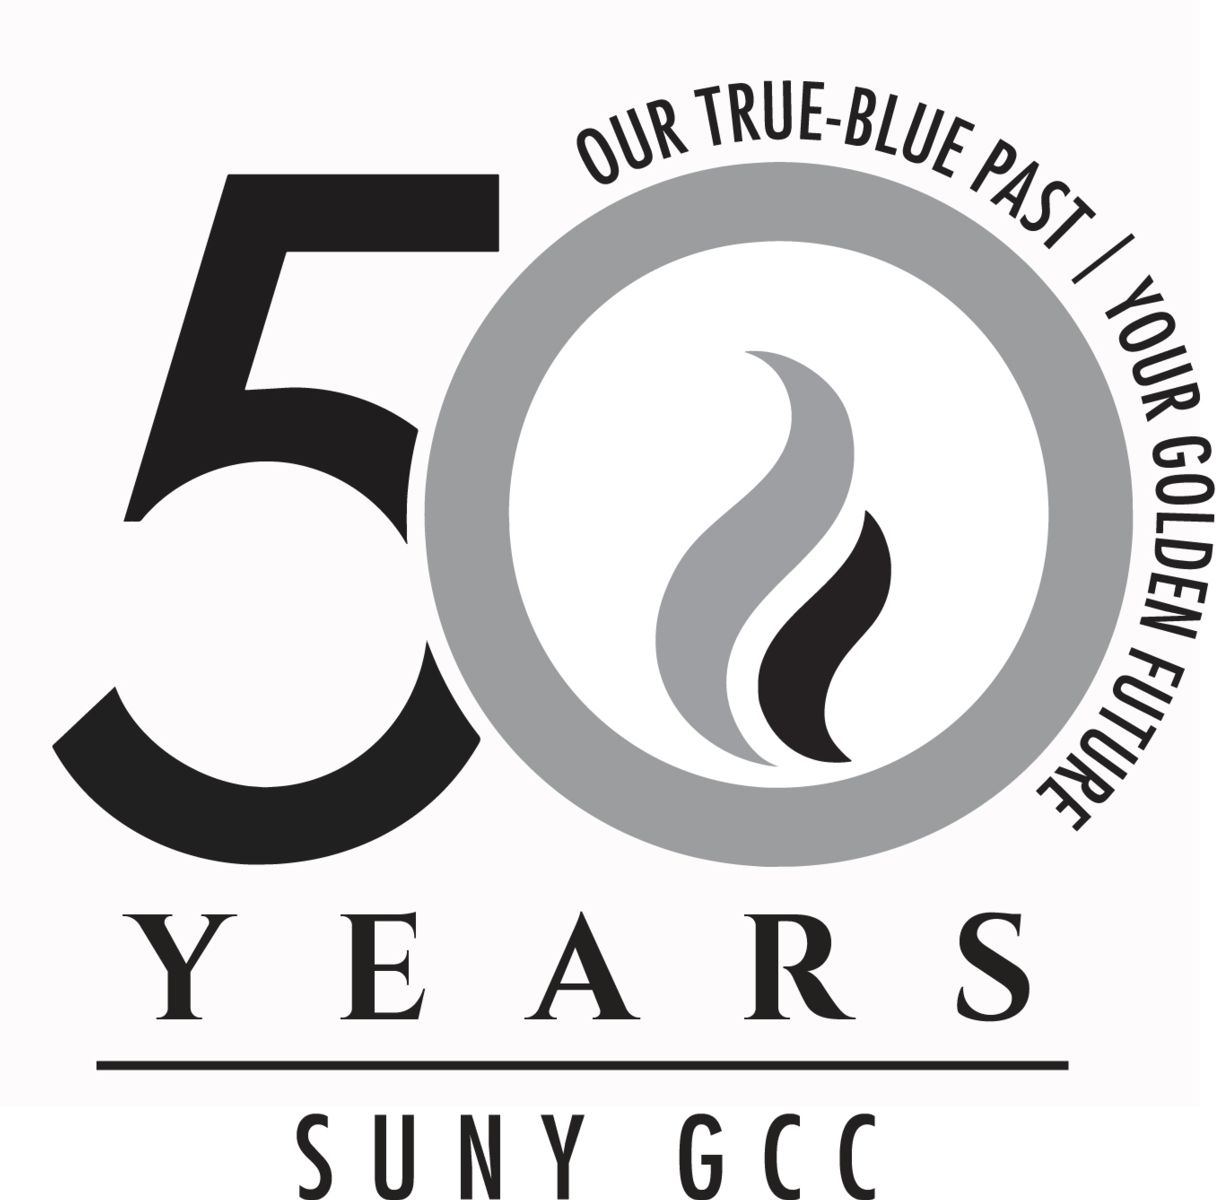 GCC 50th Anniversary Logo - True Blue Variation, Black and White